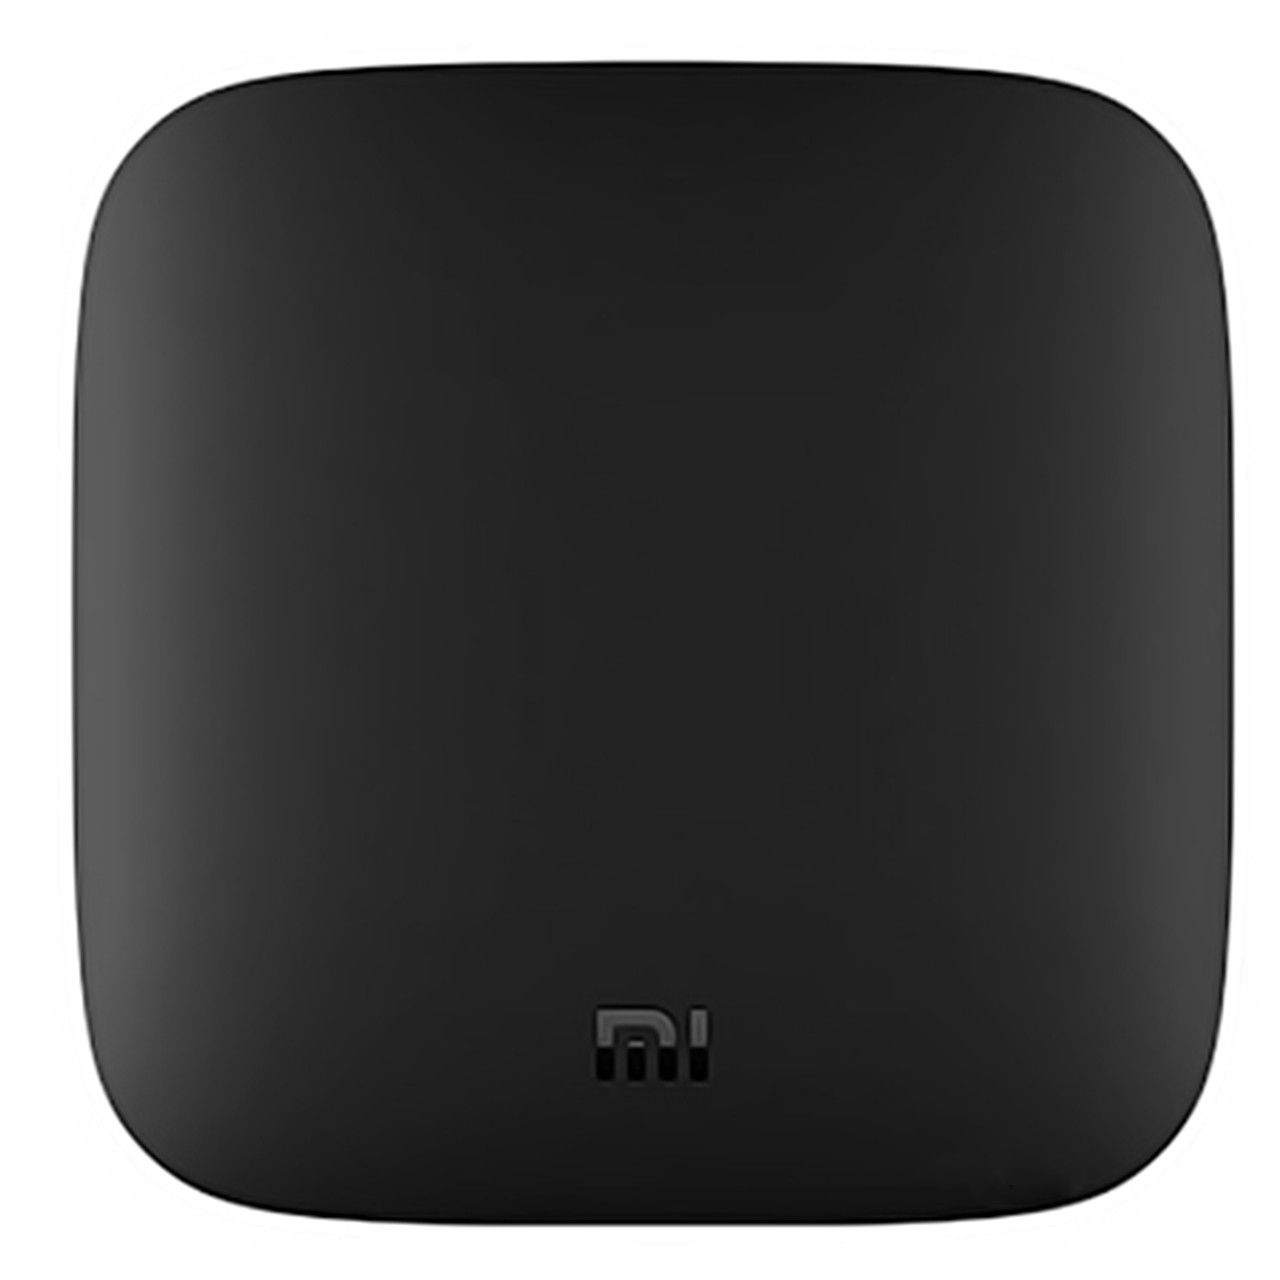 Xiaomi Mi Box MDZ-16-AB, 2GB+8GB Android приставка для смарт тв tv box